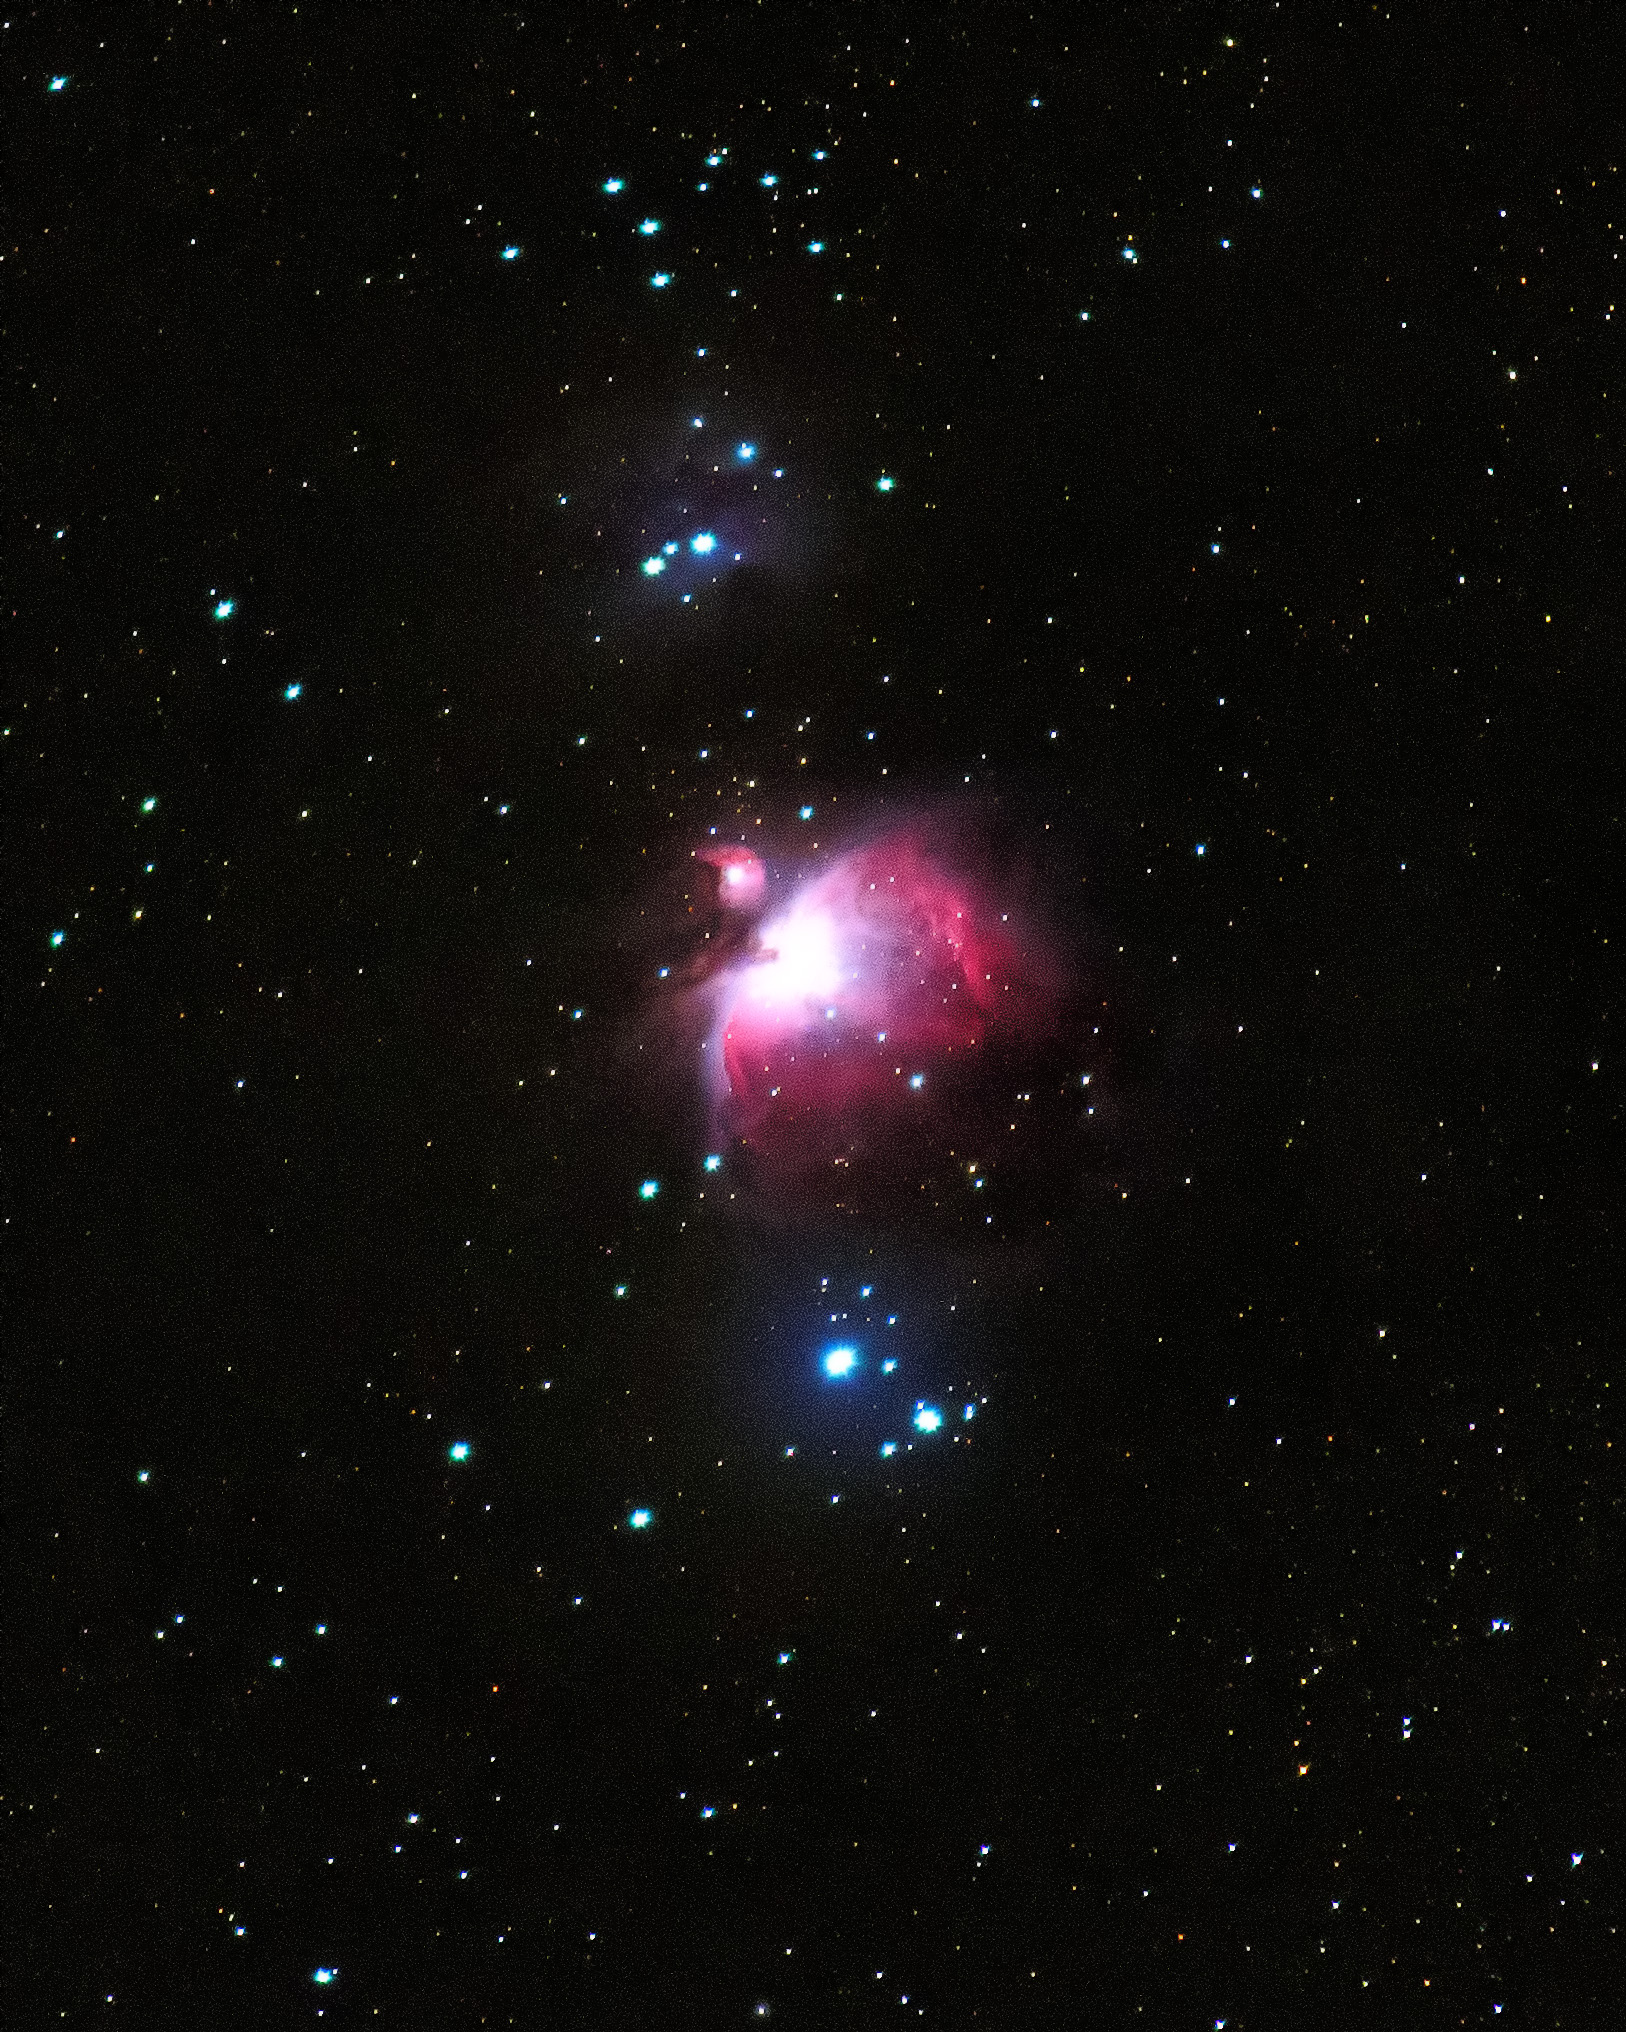 M42 Orion Nebula by Mike Meynell